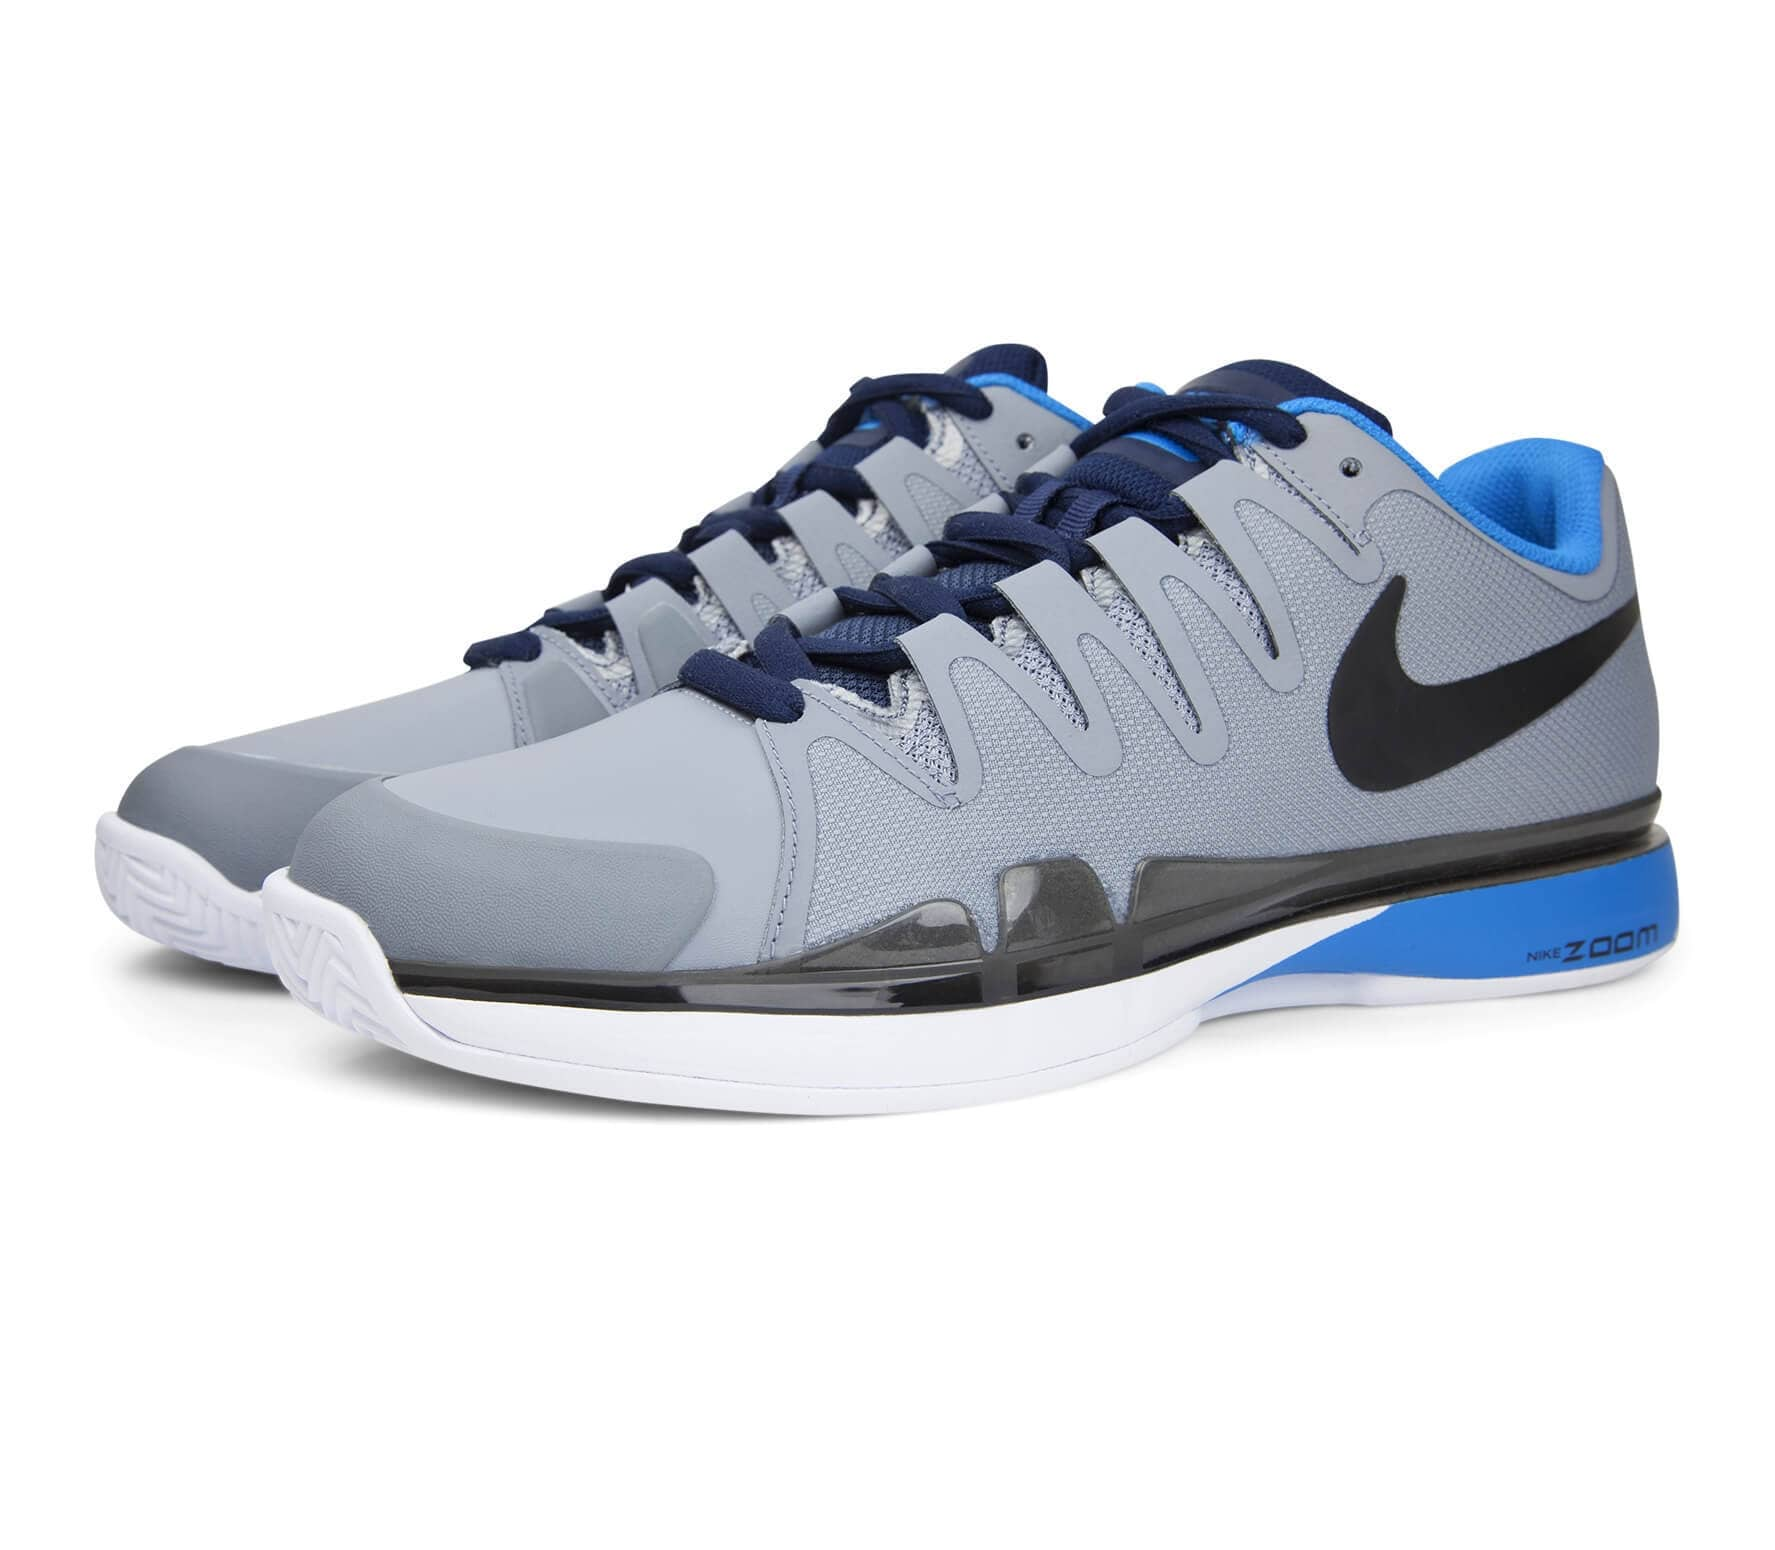 01bab1fad2d Nike - Air Zoom Vapor 9.5 Tour Clay Heren Tennis schoen (grijs/blauw ...